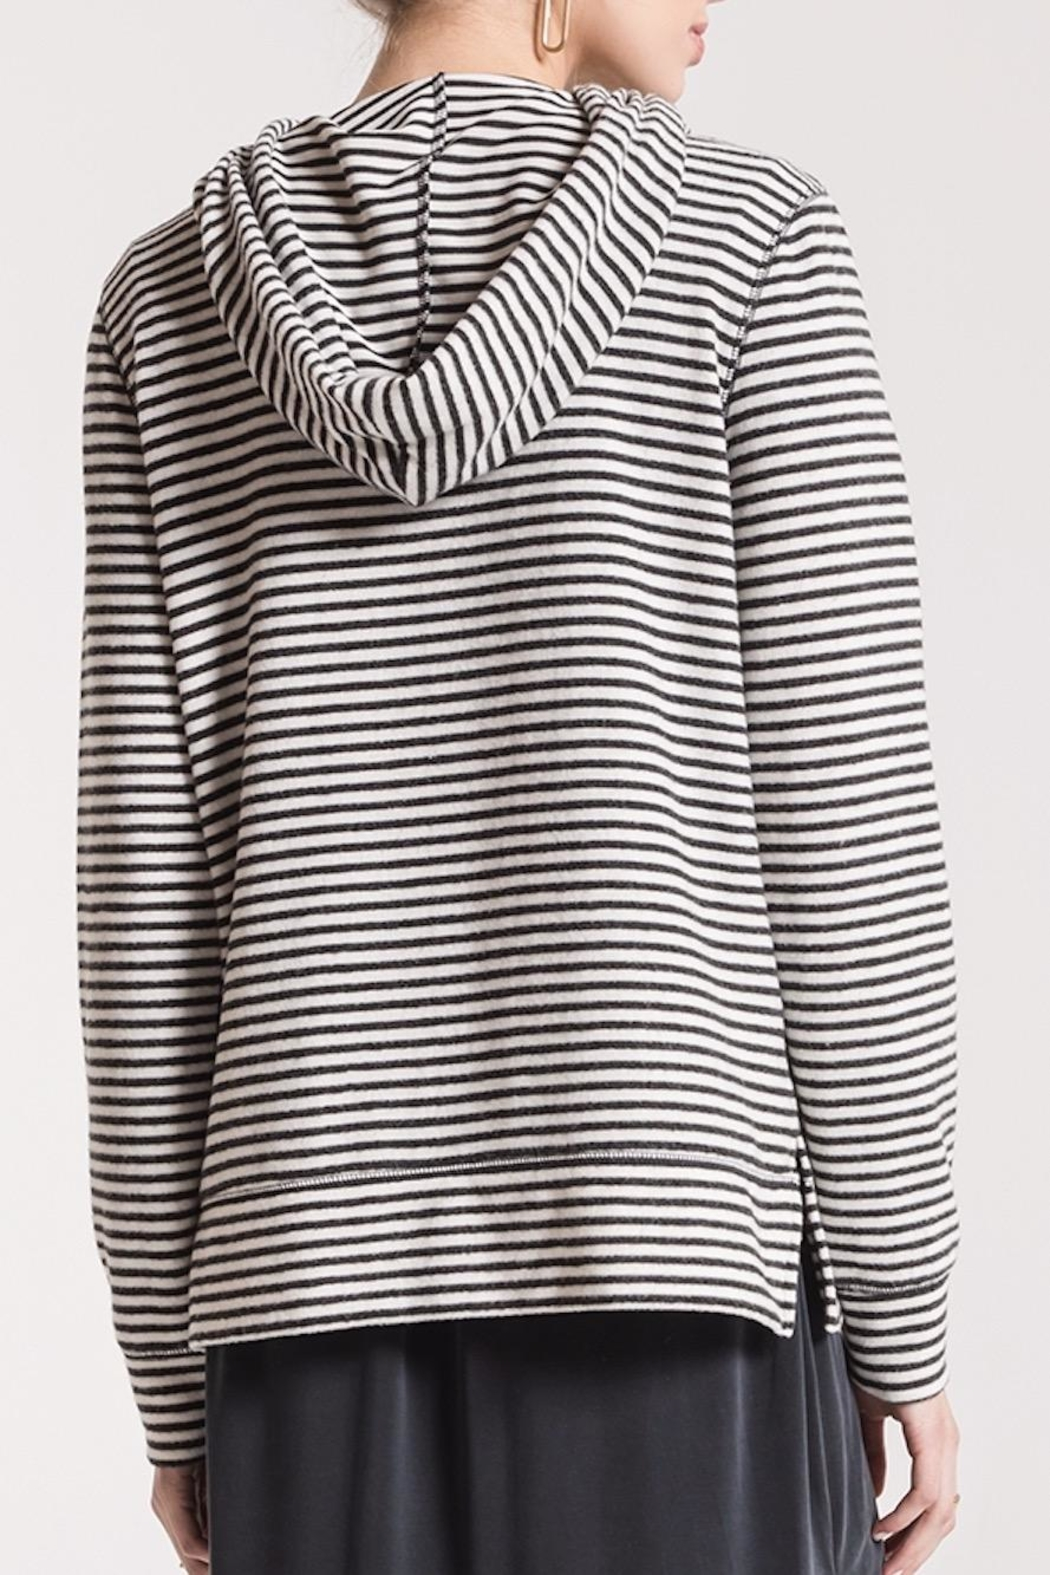 z supply Soft Striped Hoodie - Front Full Image